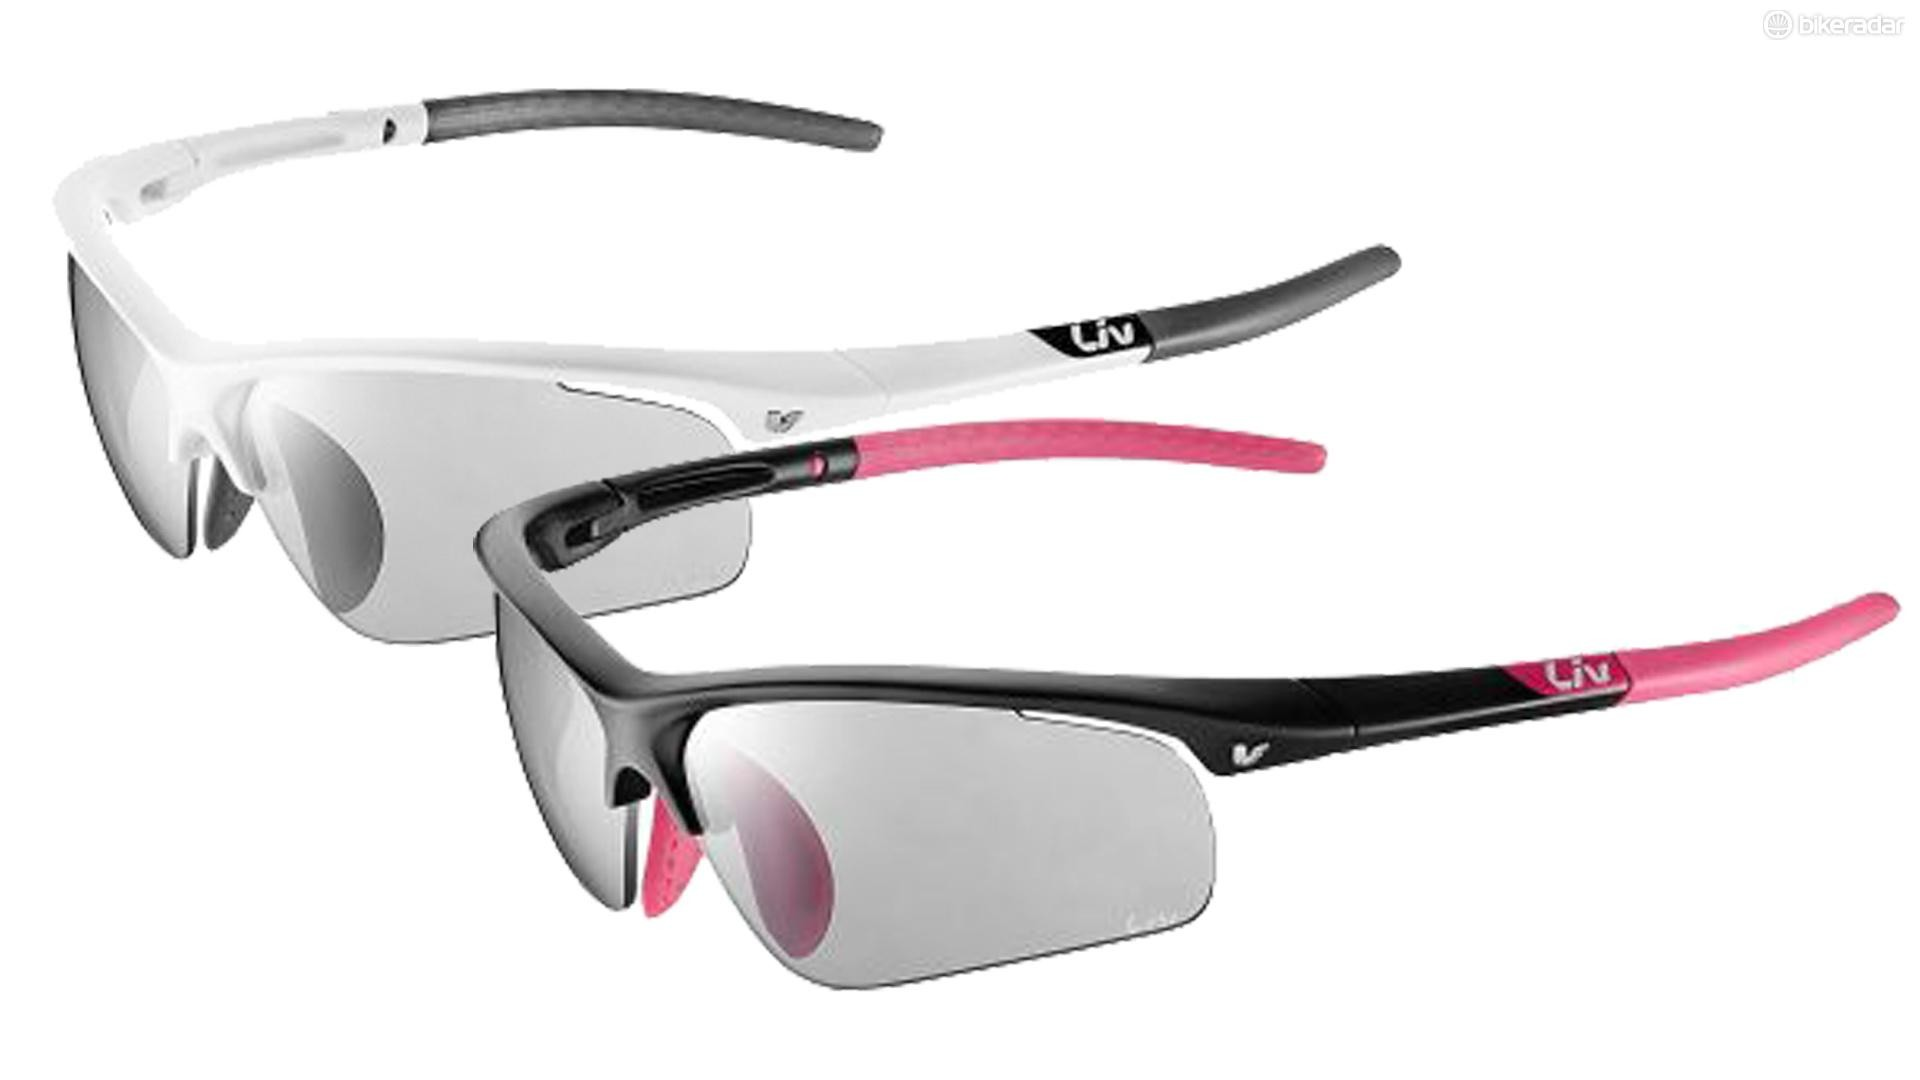 Glasses protect your eyes and ensure you have clear sight of the trail or road ahead